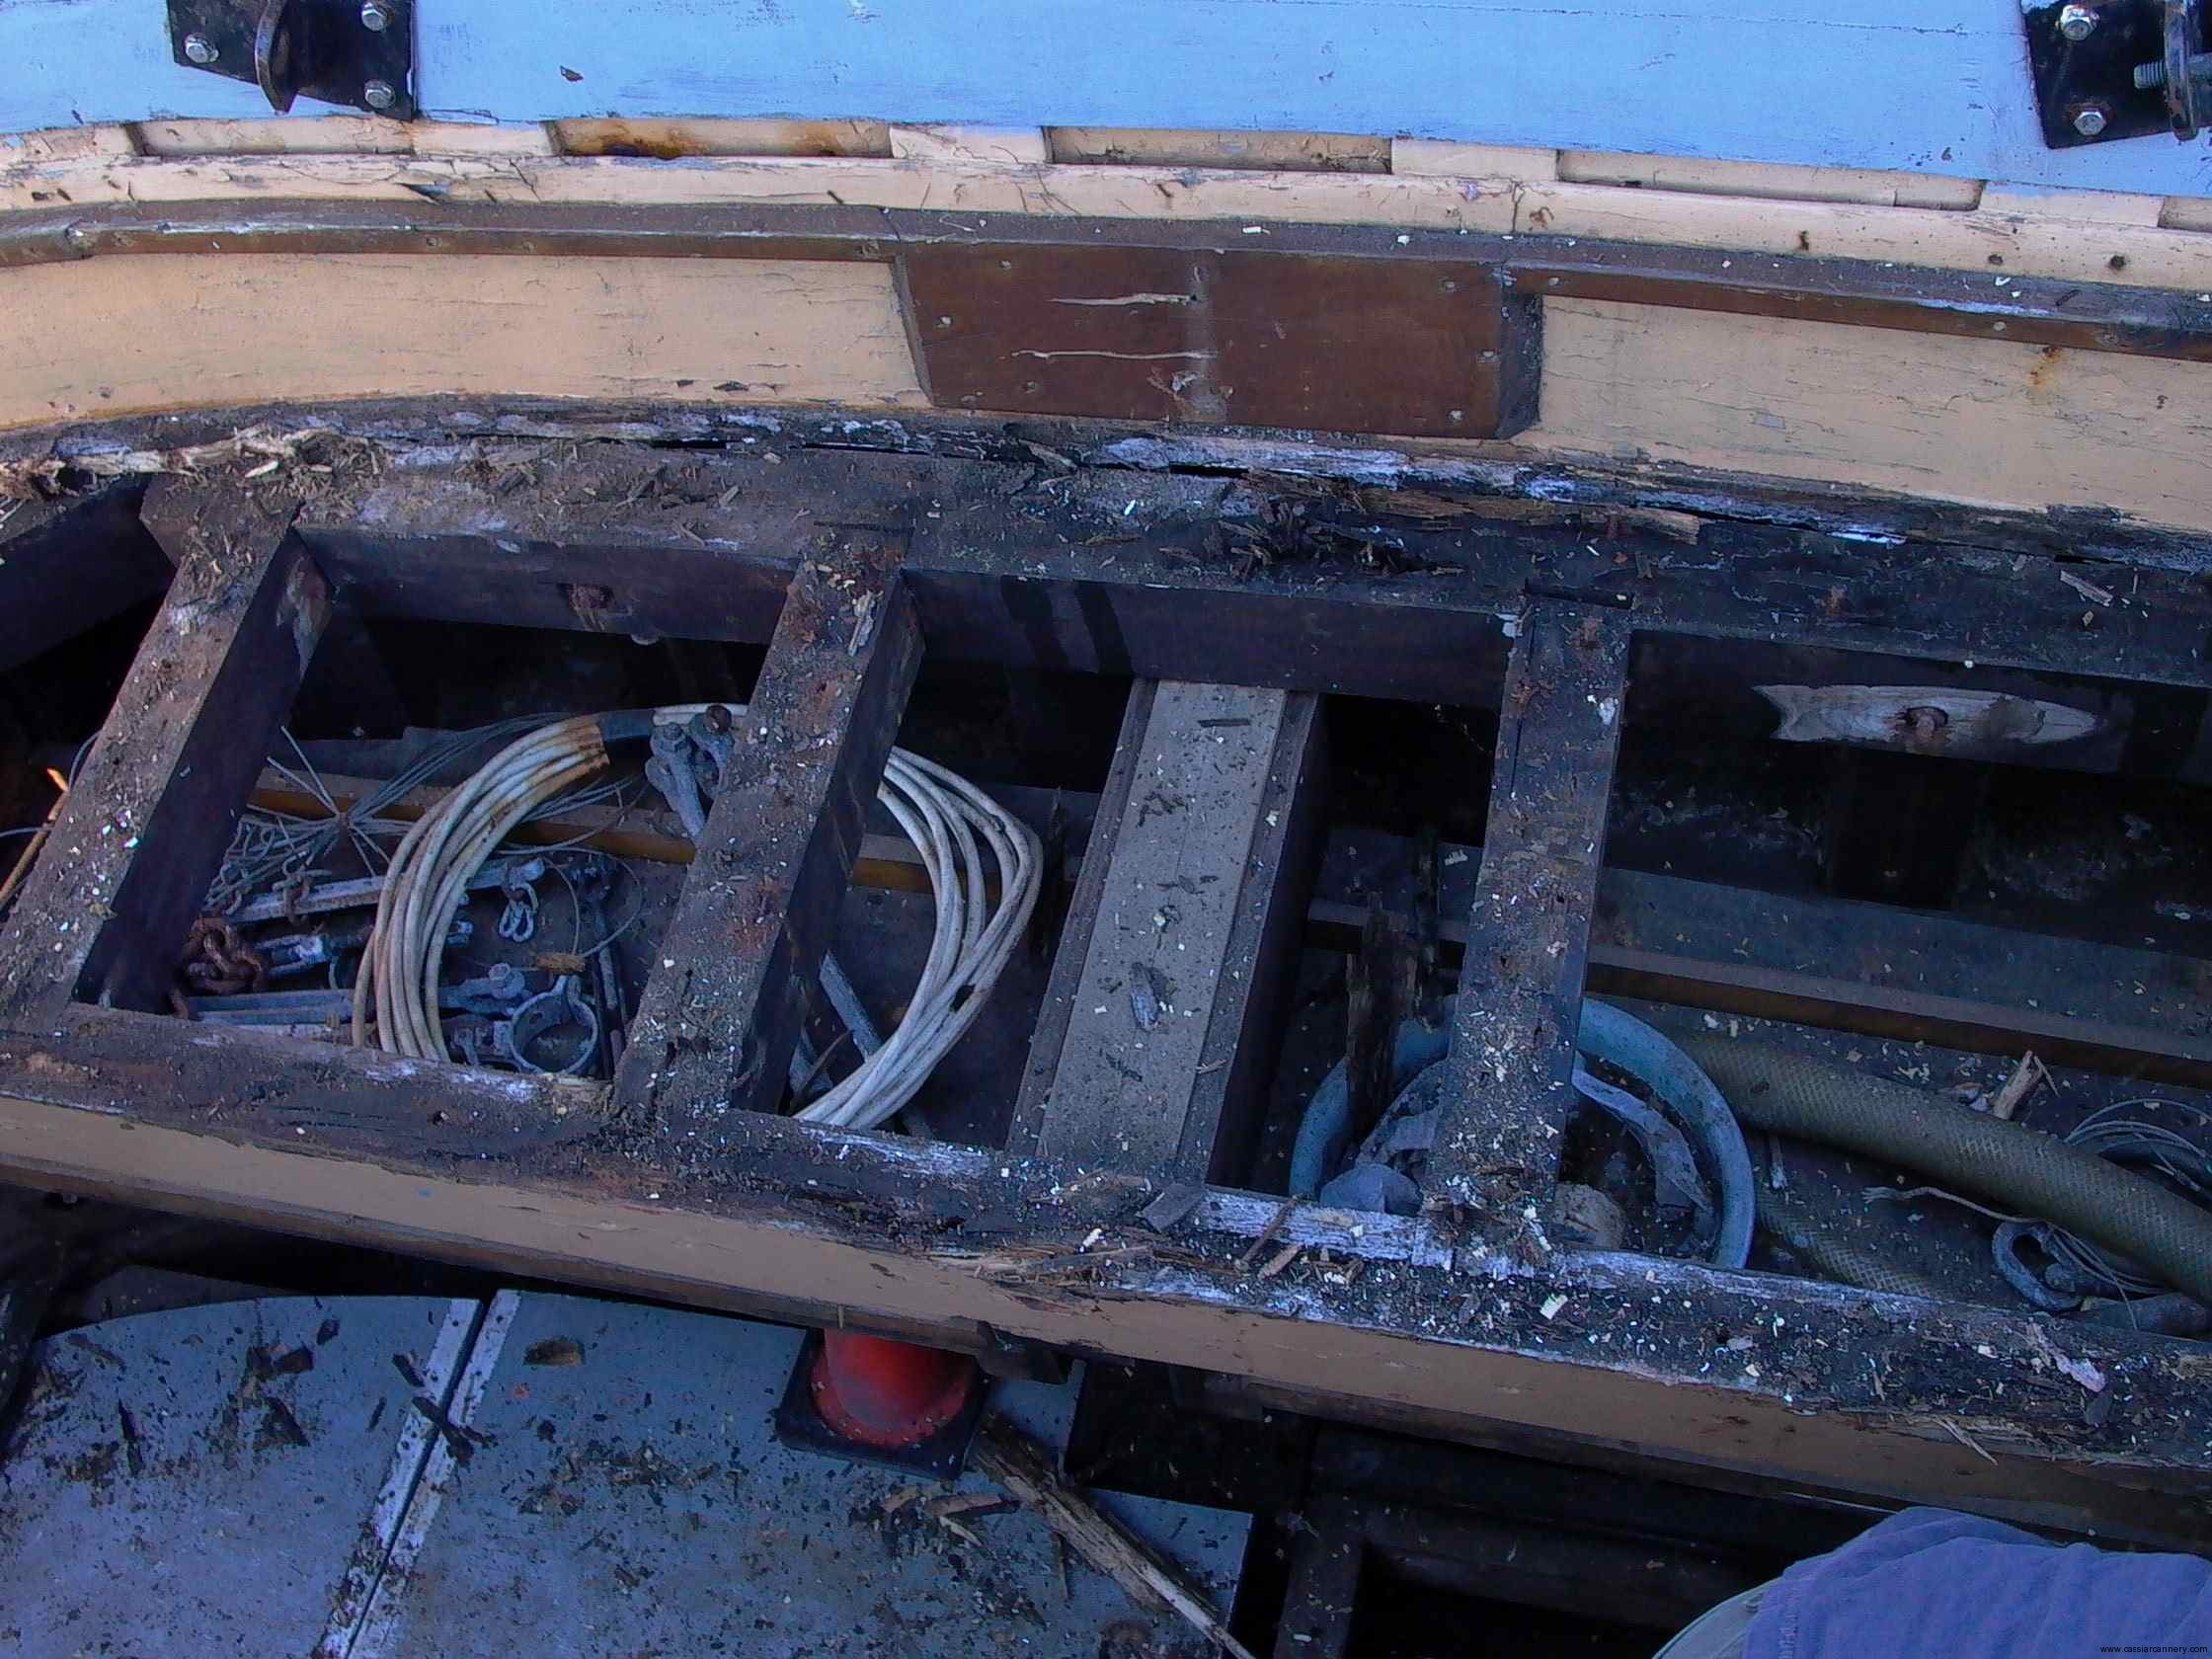 Cassiar Cannery - Poseidon Marine - Michelle Marie - removal of stern decking